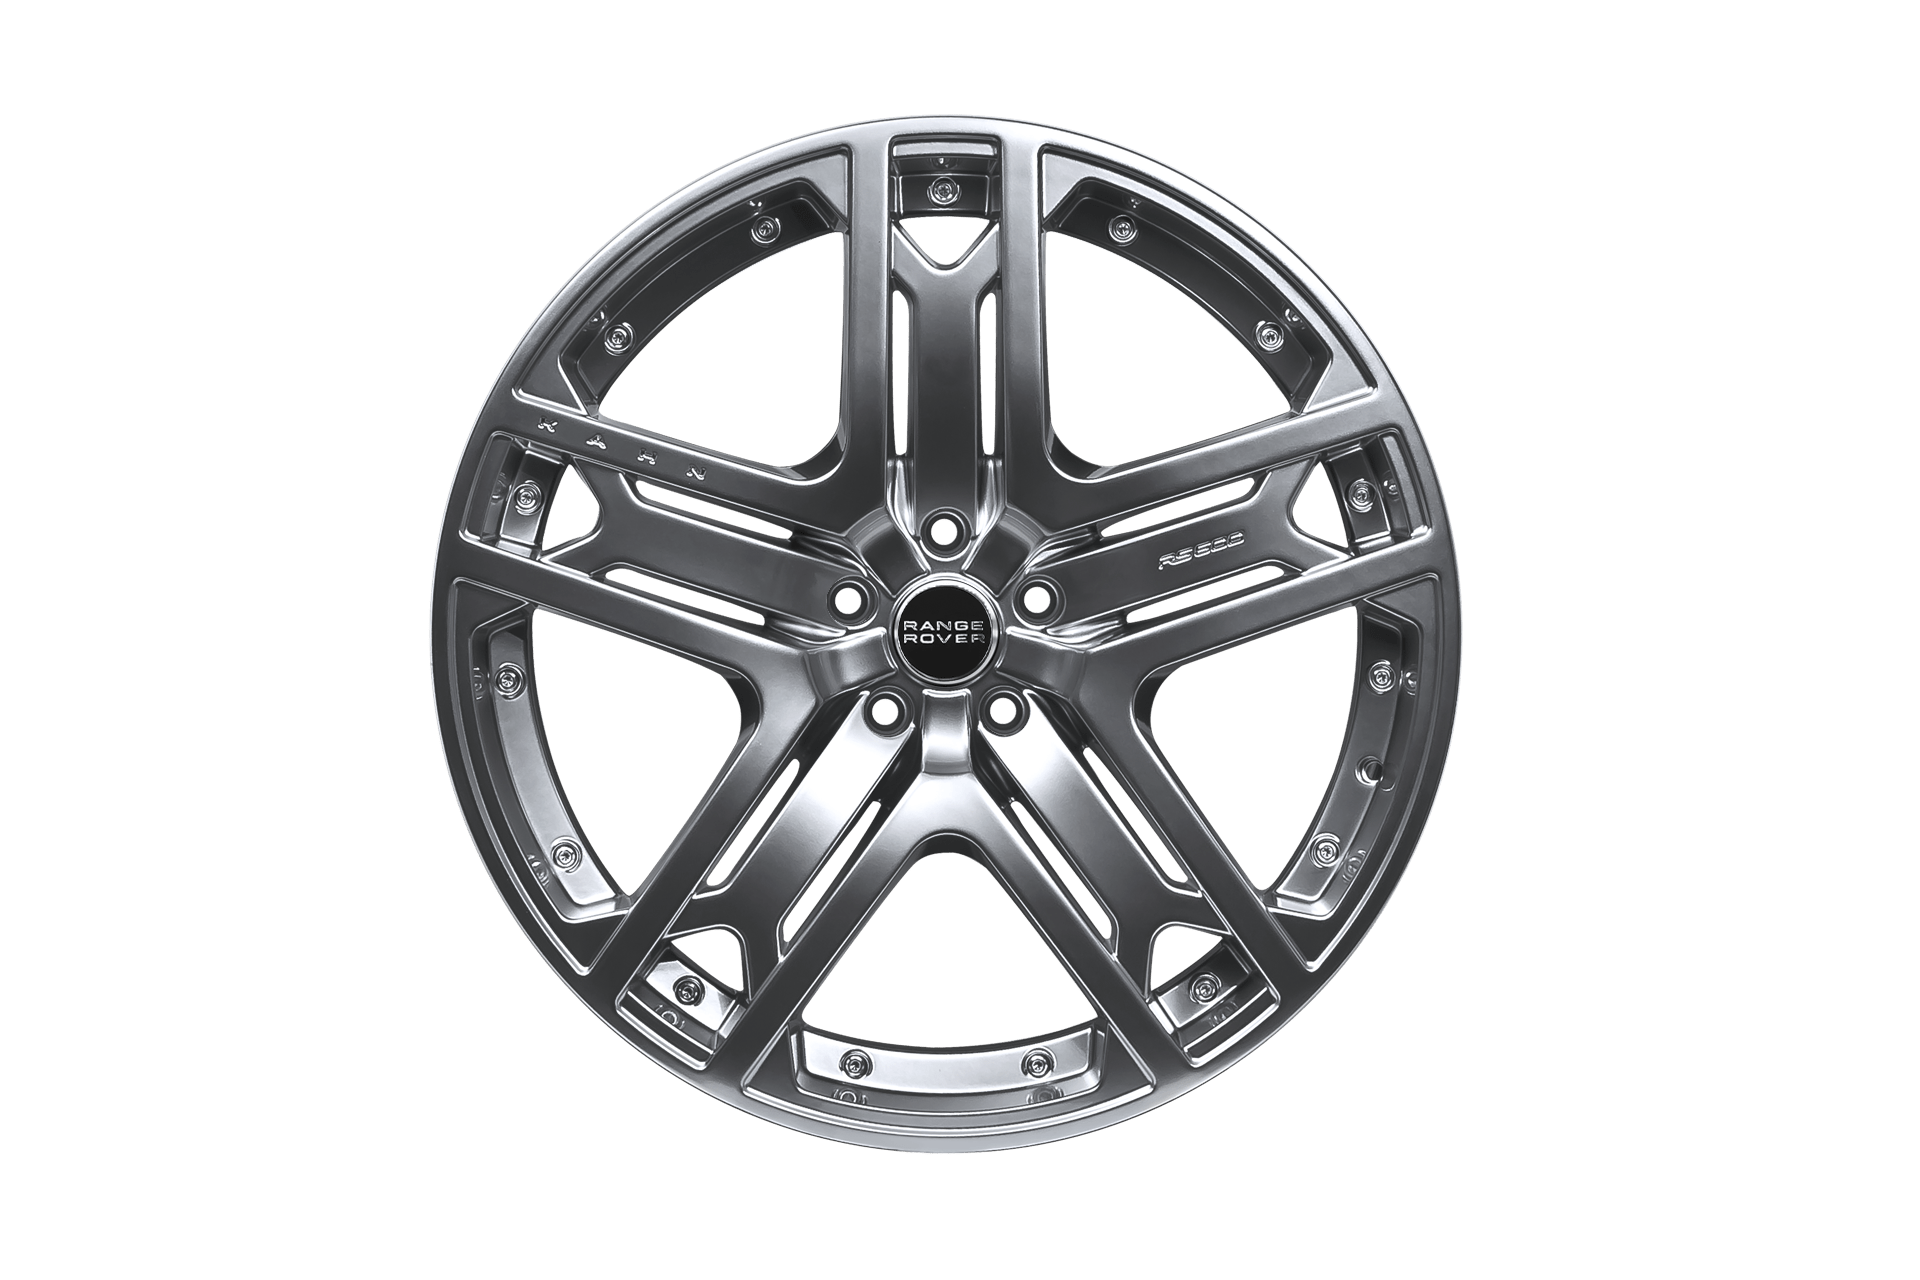 Range Rover Sport Svr (2018-Present) Rs600 Light Alloy Wheels by Kahn - Image 3280